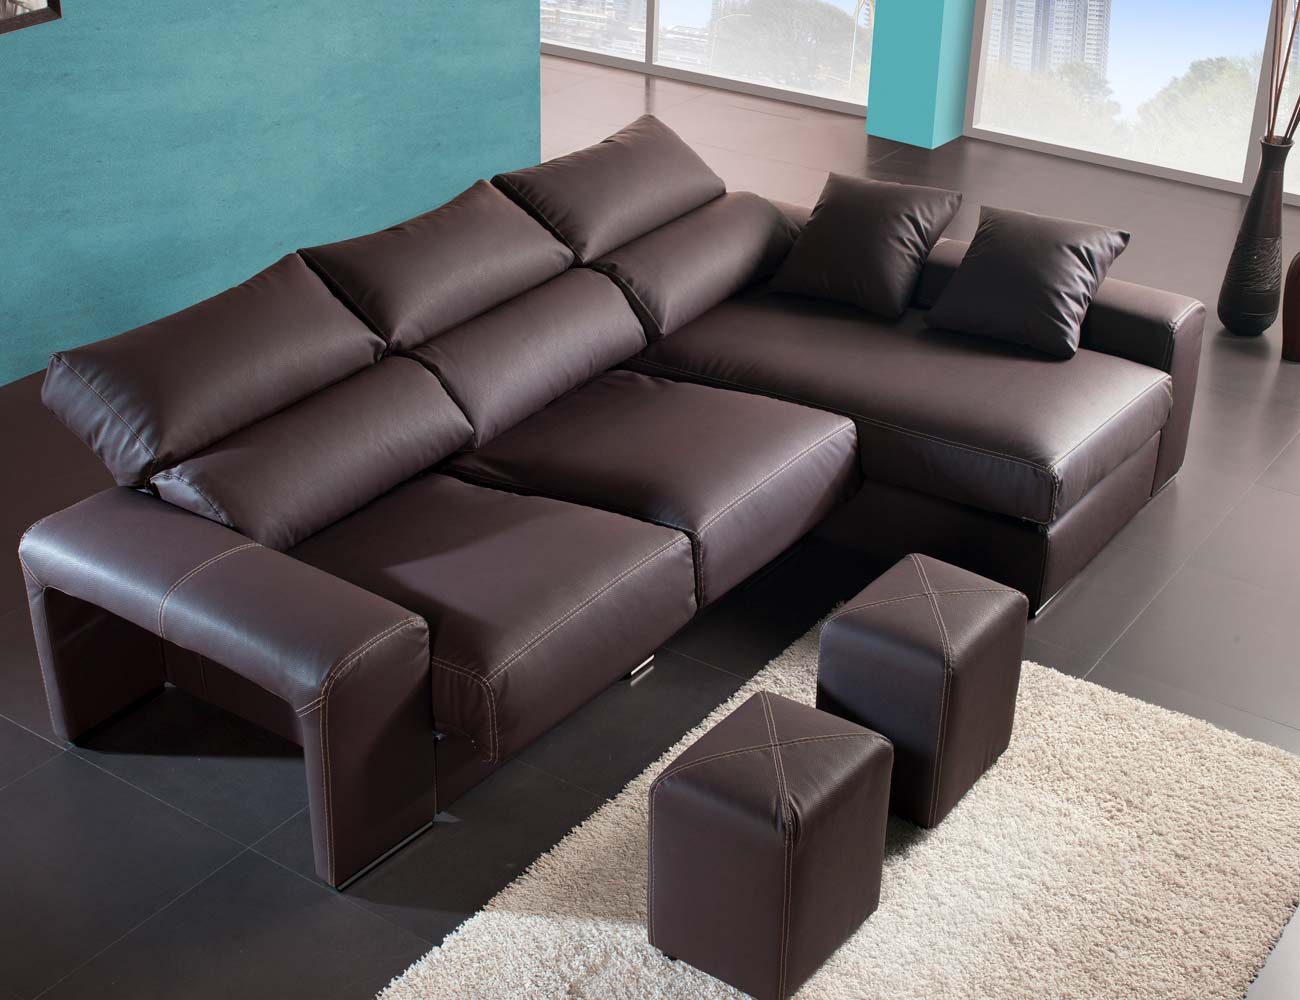 Sofa chaiselongue moderno polipiel chocolate poufs taburetes12